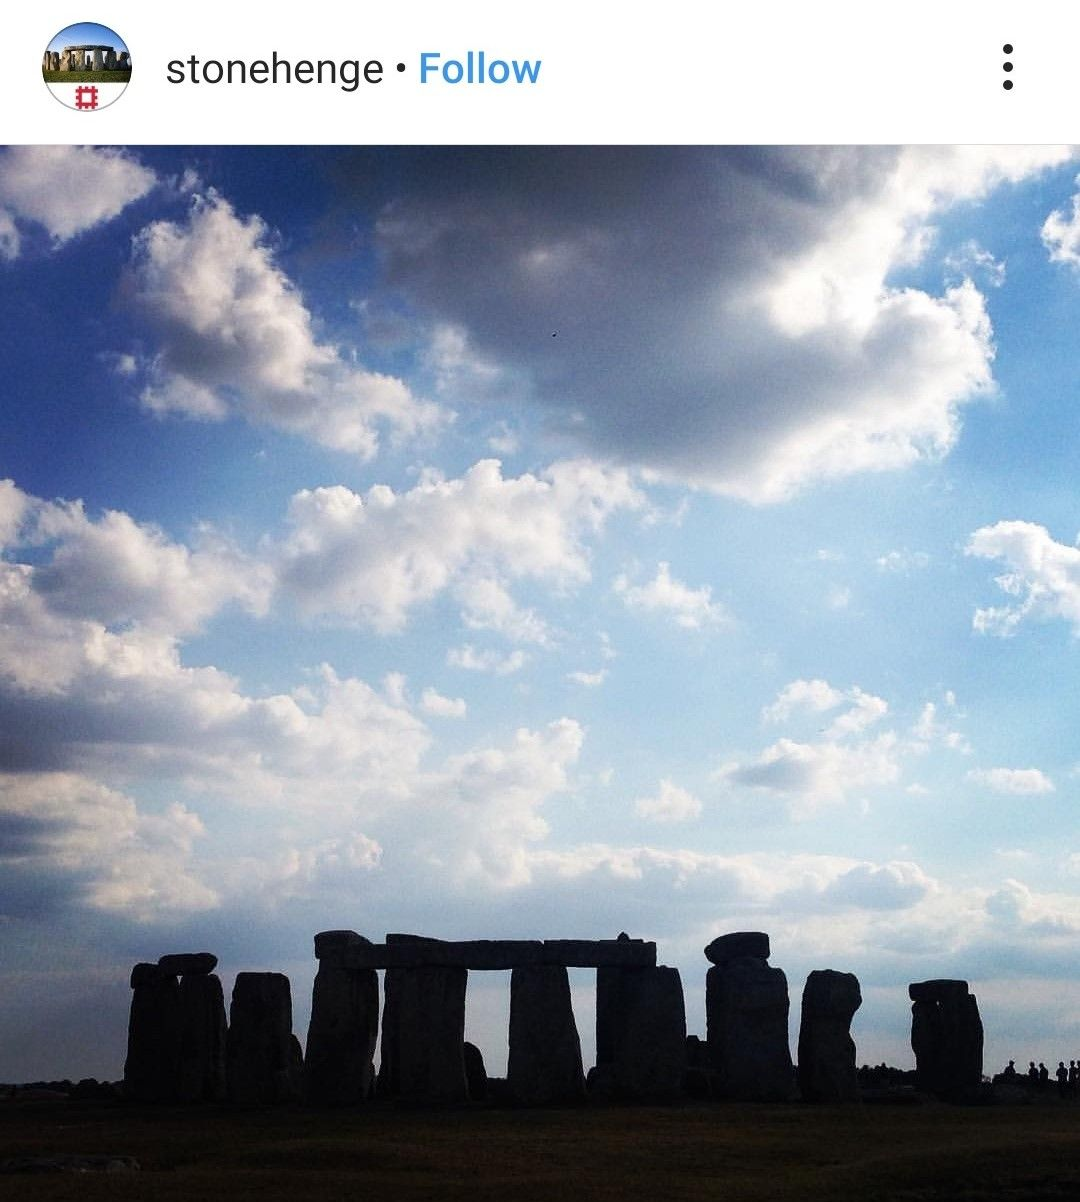 Stonehenge on a cloudy day is still gorgeous.